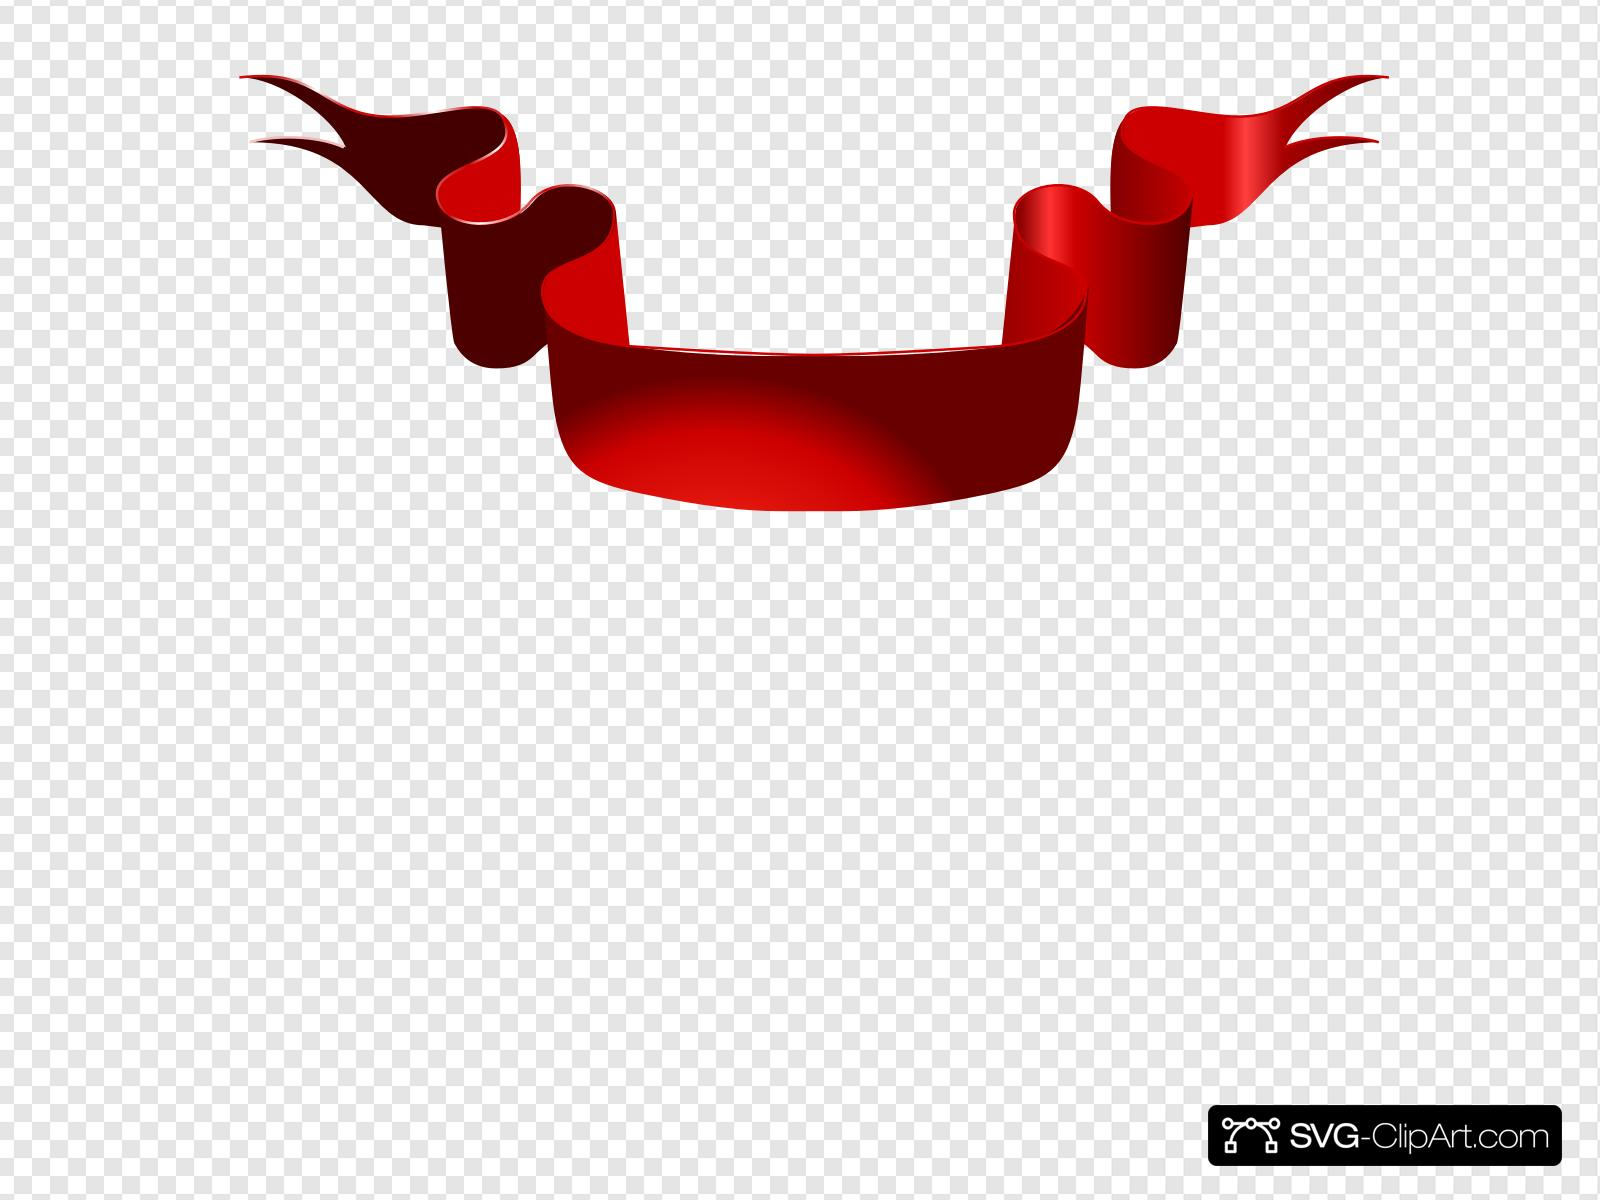 Red Ribbon Church Clip art, Icon and SVG.